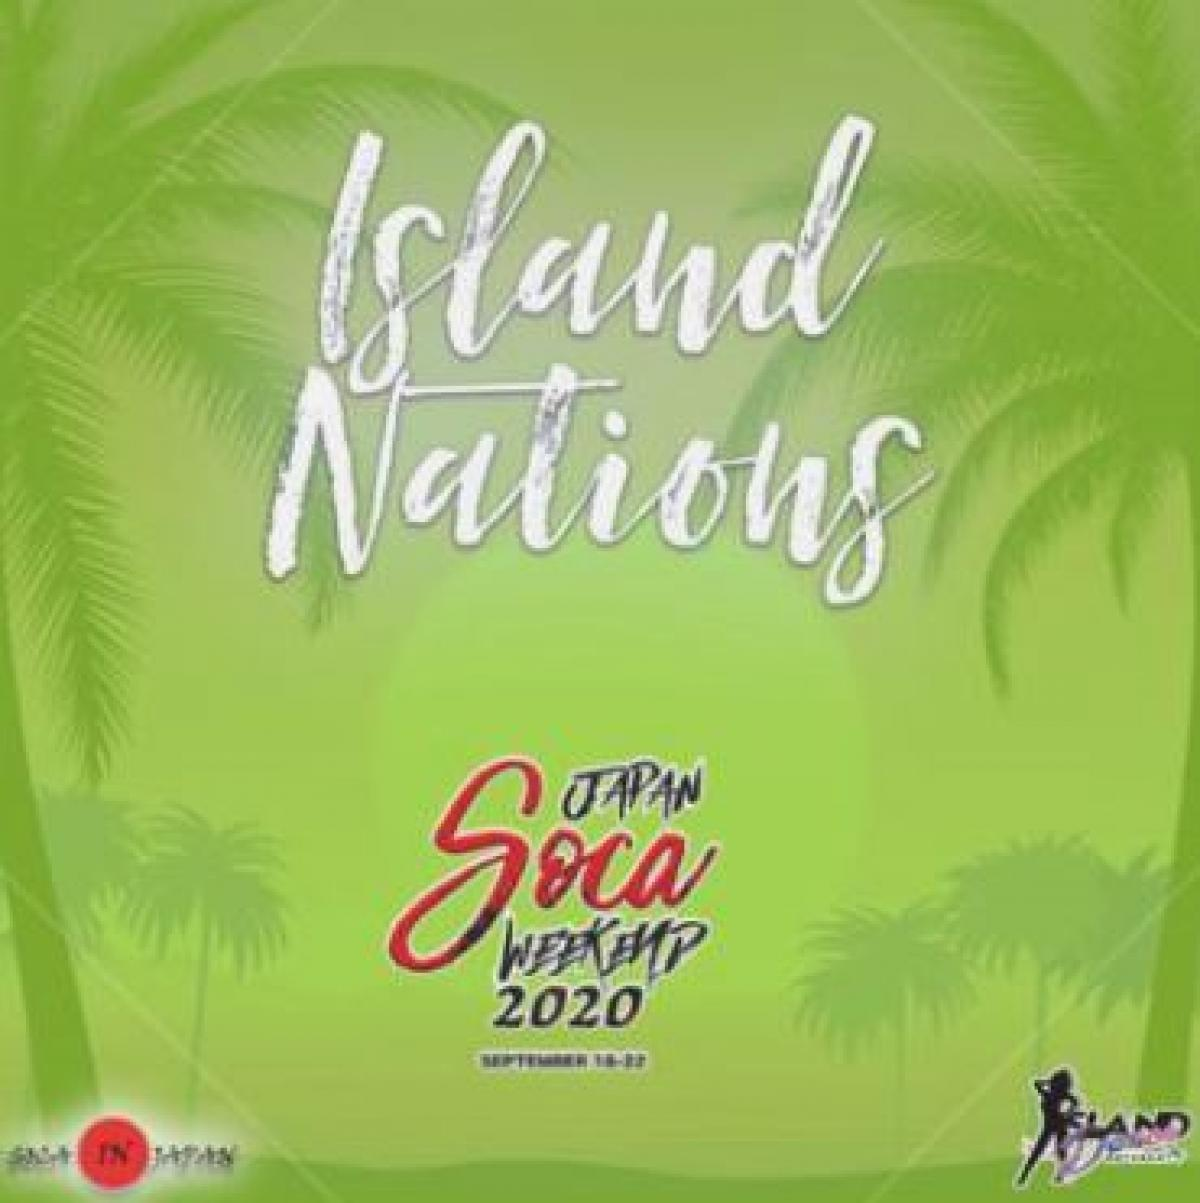 Island Nation flyer or graphic.